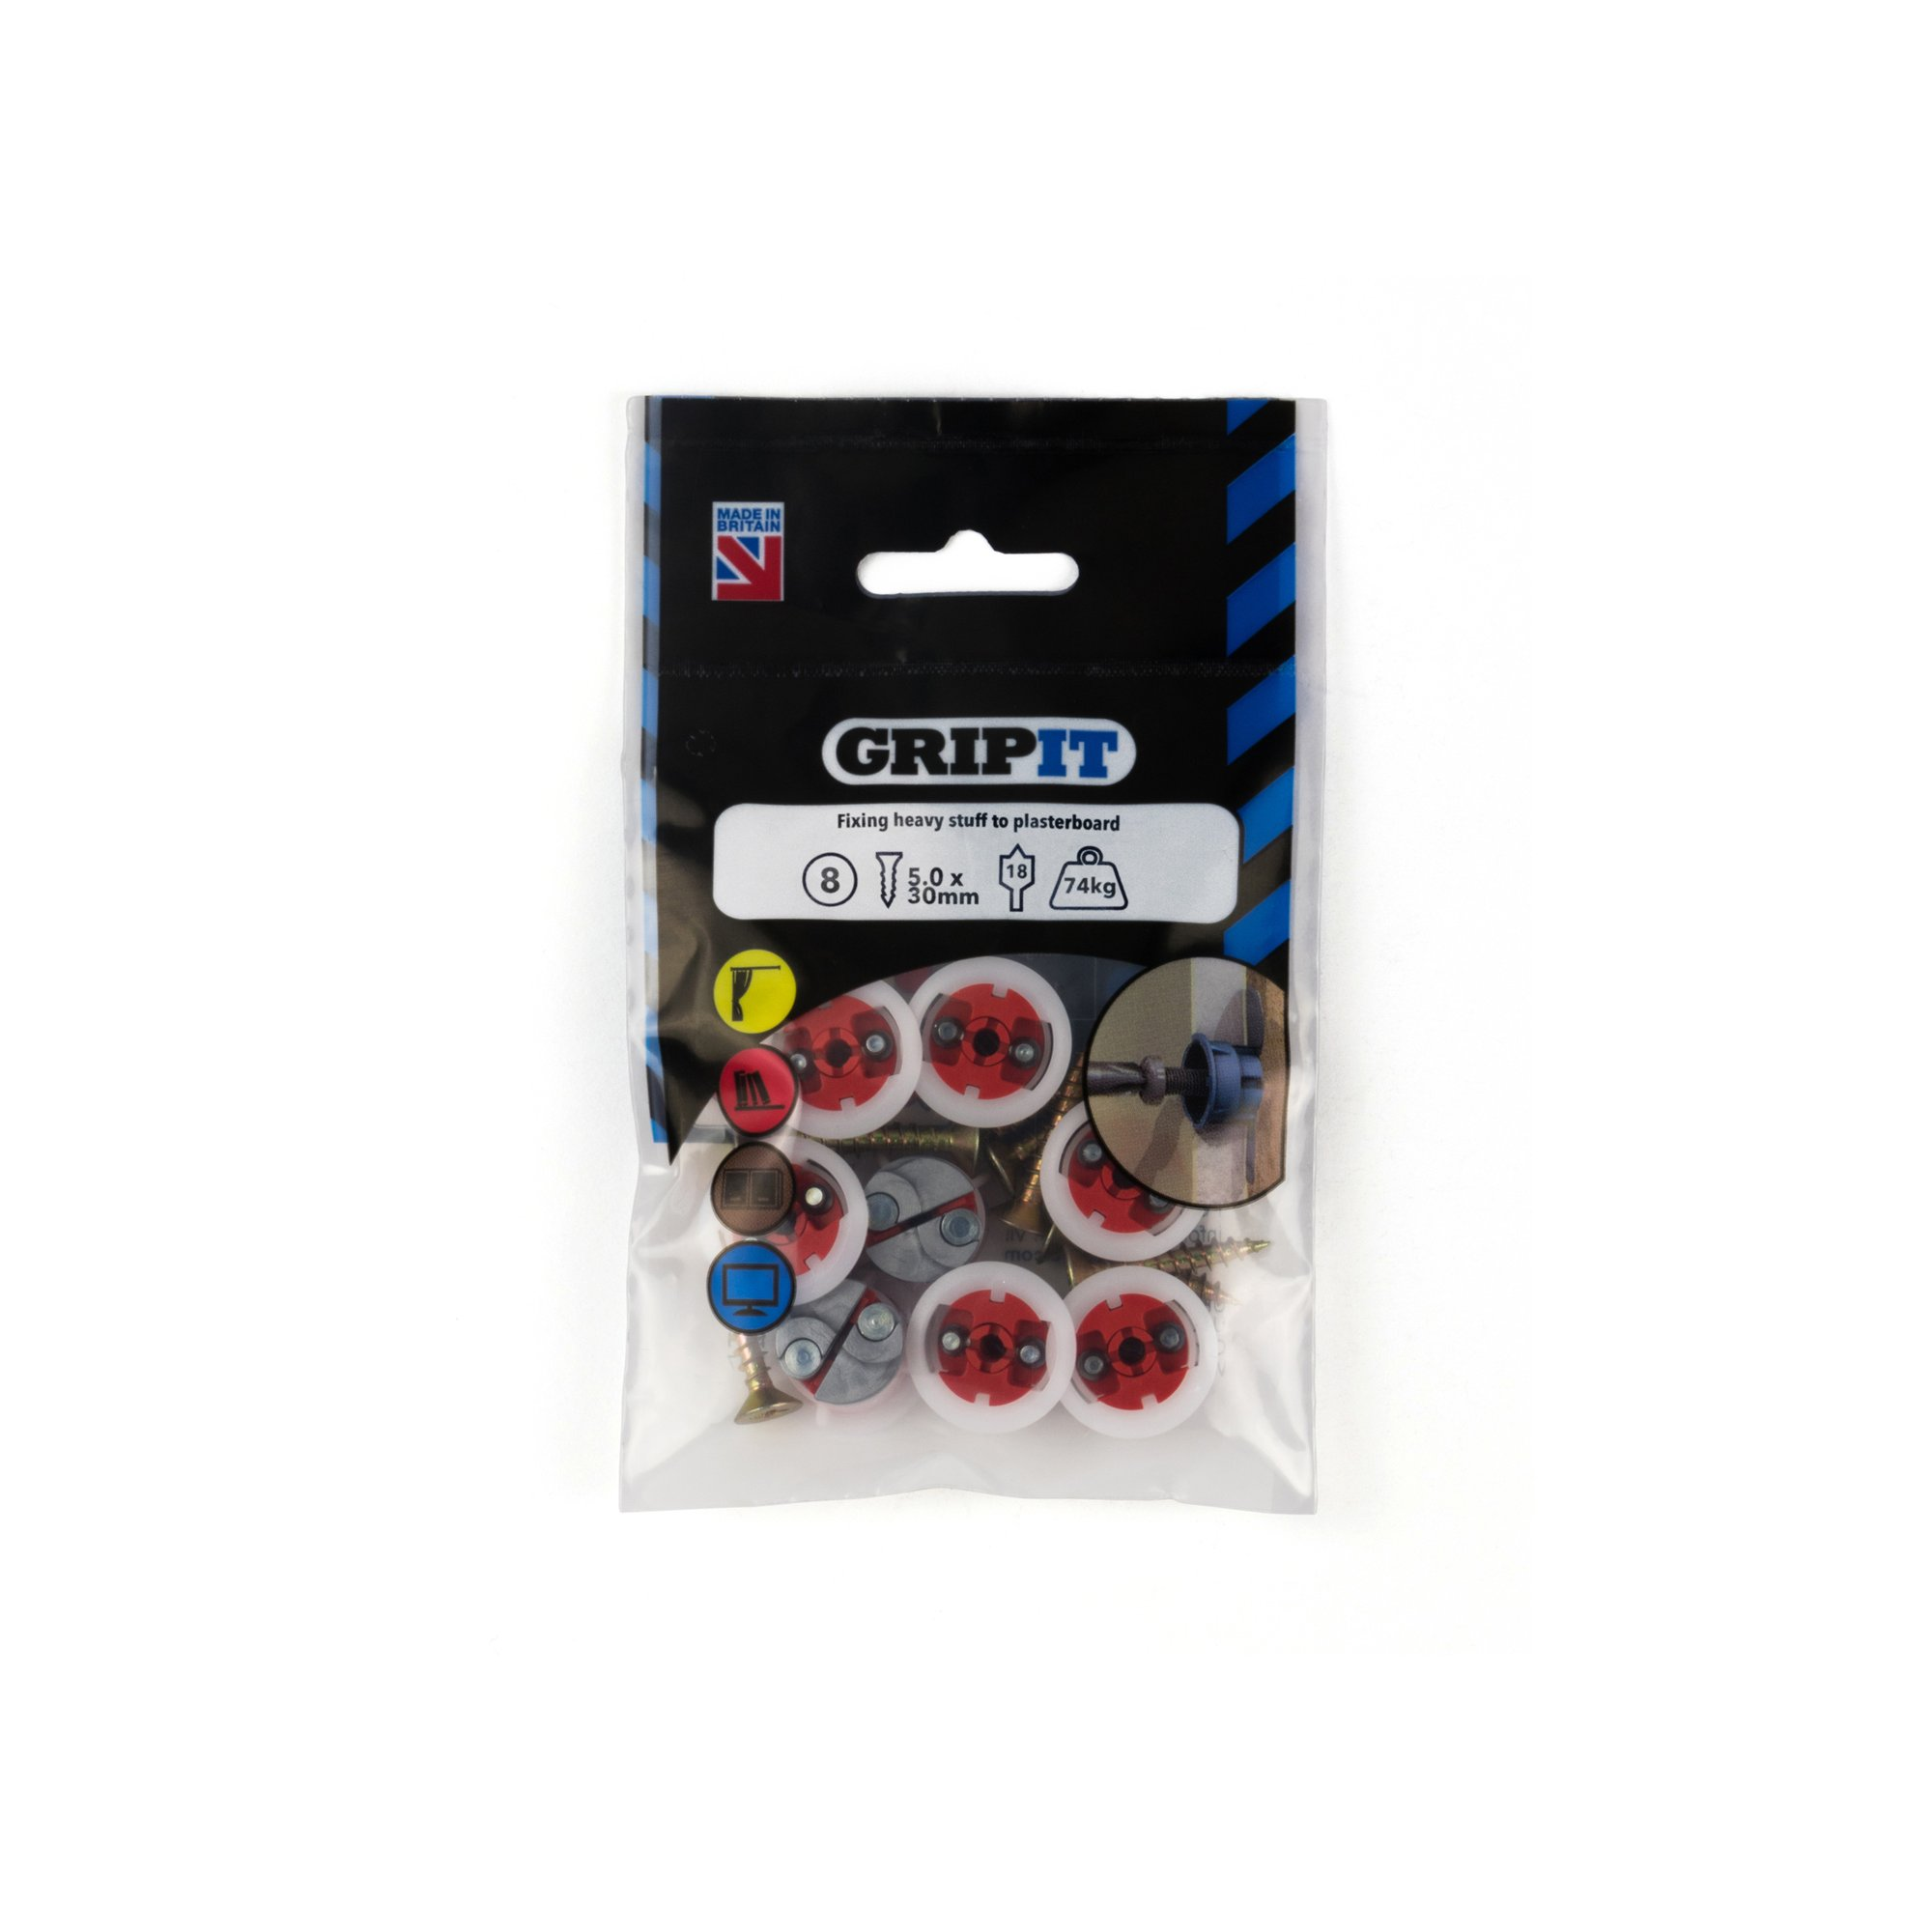 Gripit Plasterboard Fixings Red (Pack of 8) Holds Up to 71kg - 182-258